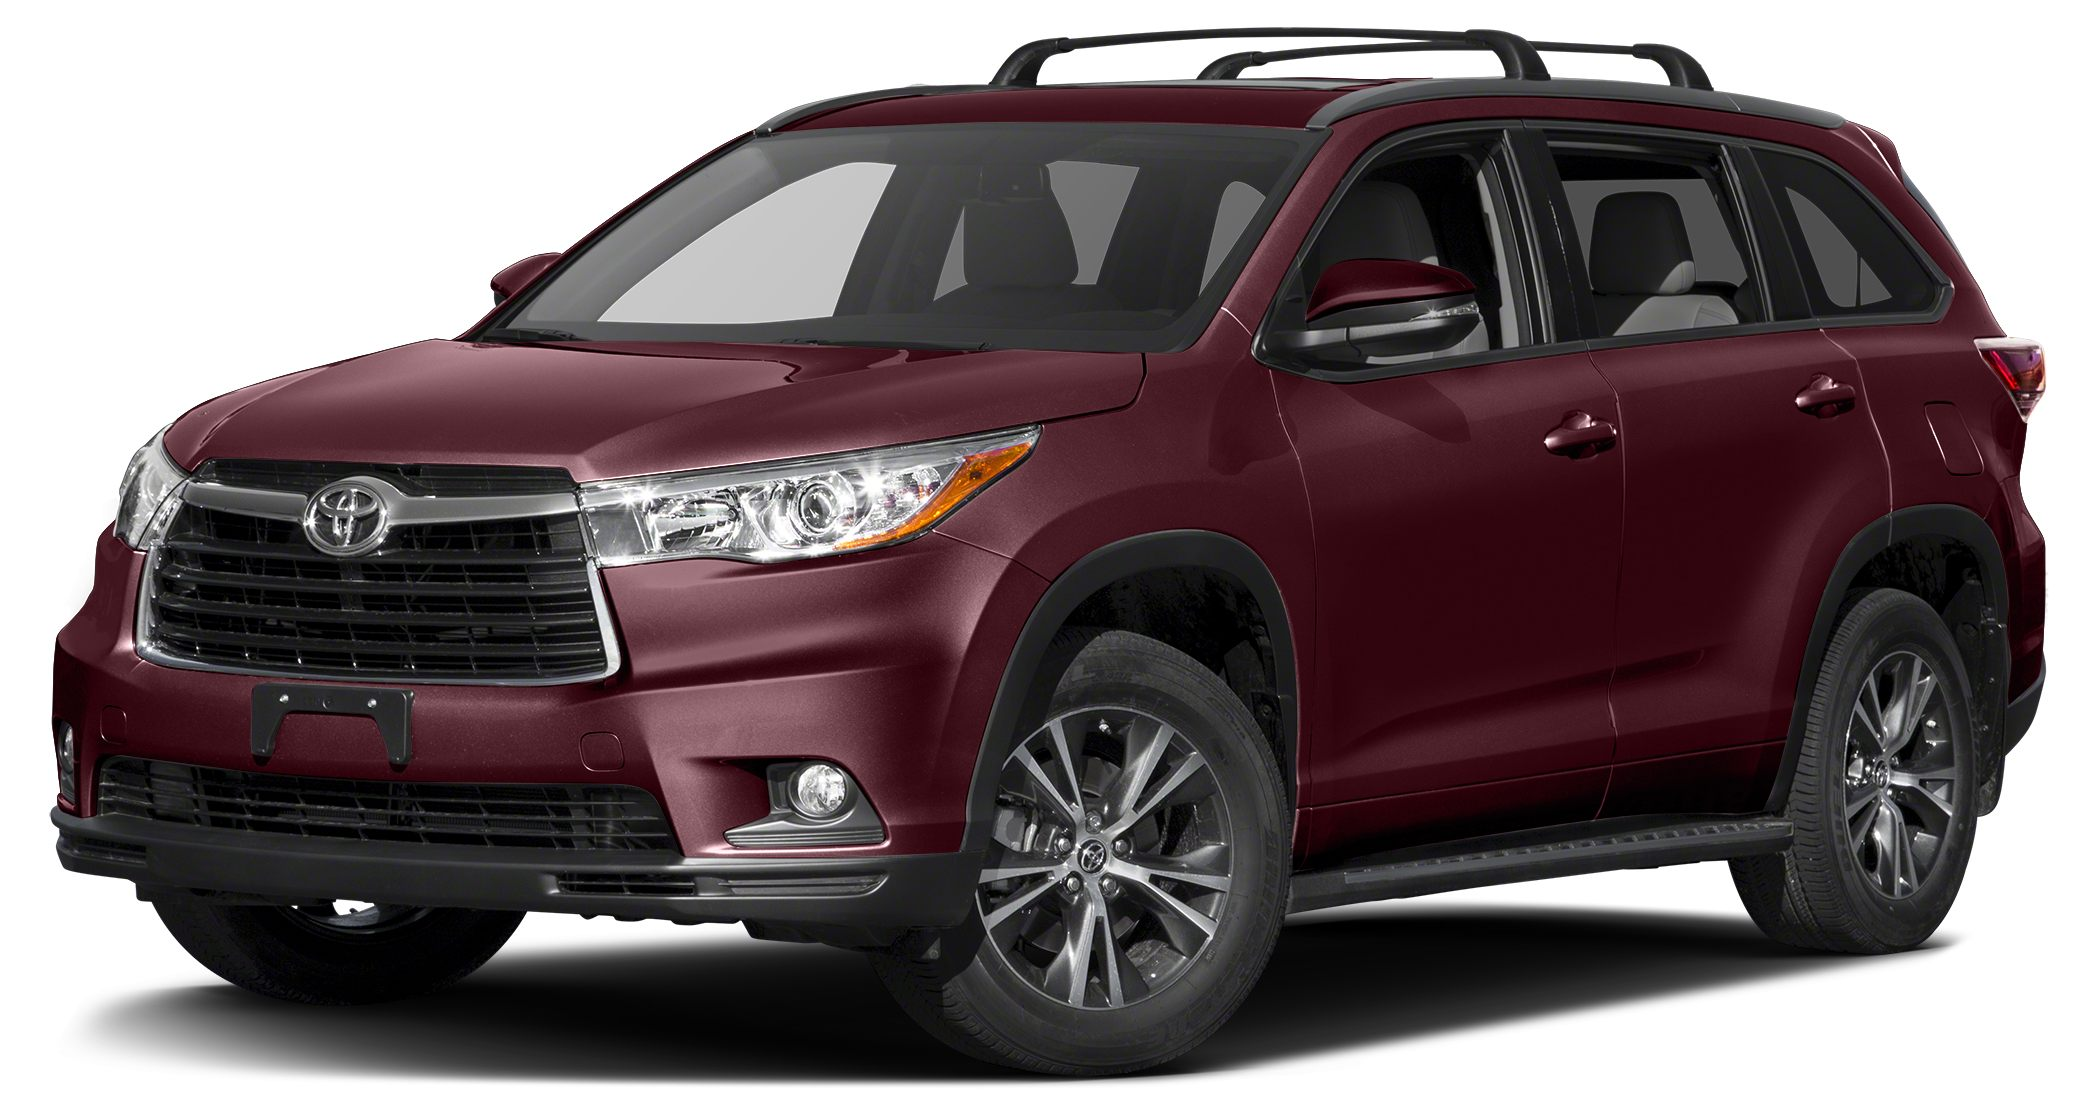 2016 Toyota Highlander XLE The Toyota Highlander is crafted with excited inspirations the exterio